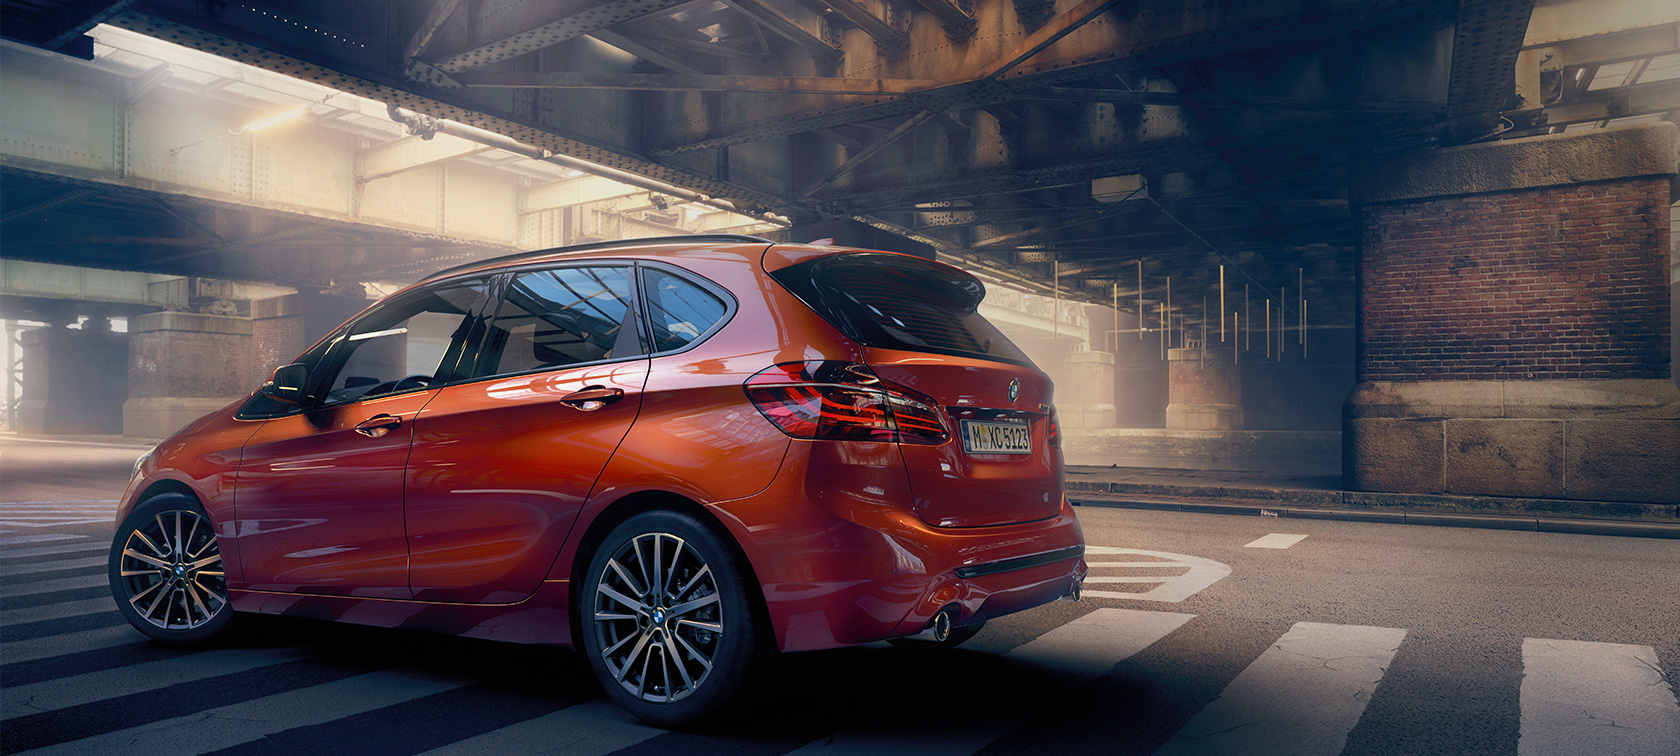 BMW 2-serie Active Tourer F45 Facelift 2018 Sunset Orange metallic sedd från sidan stående i en hall